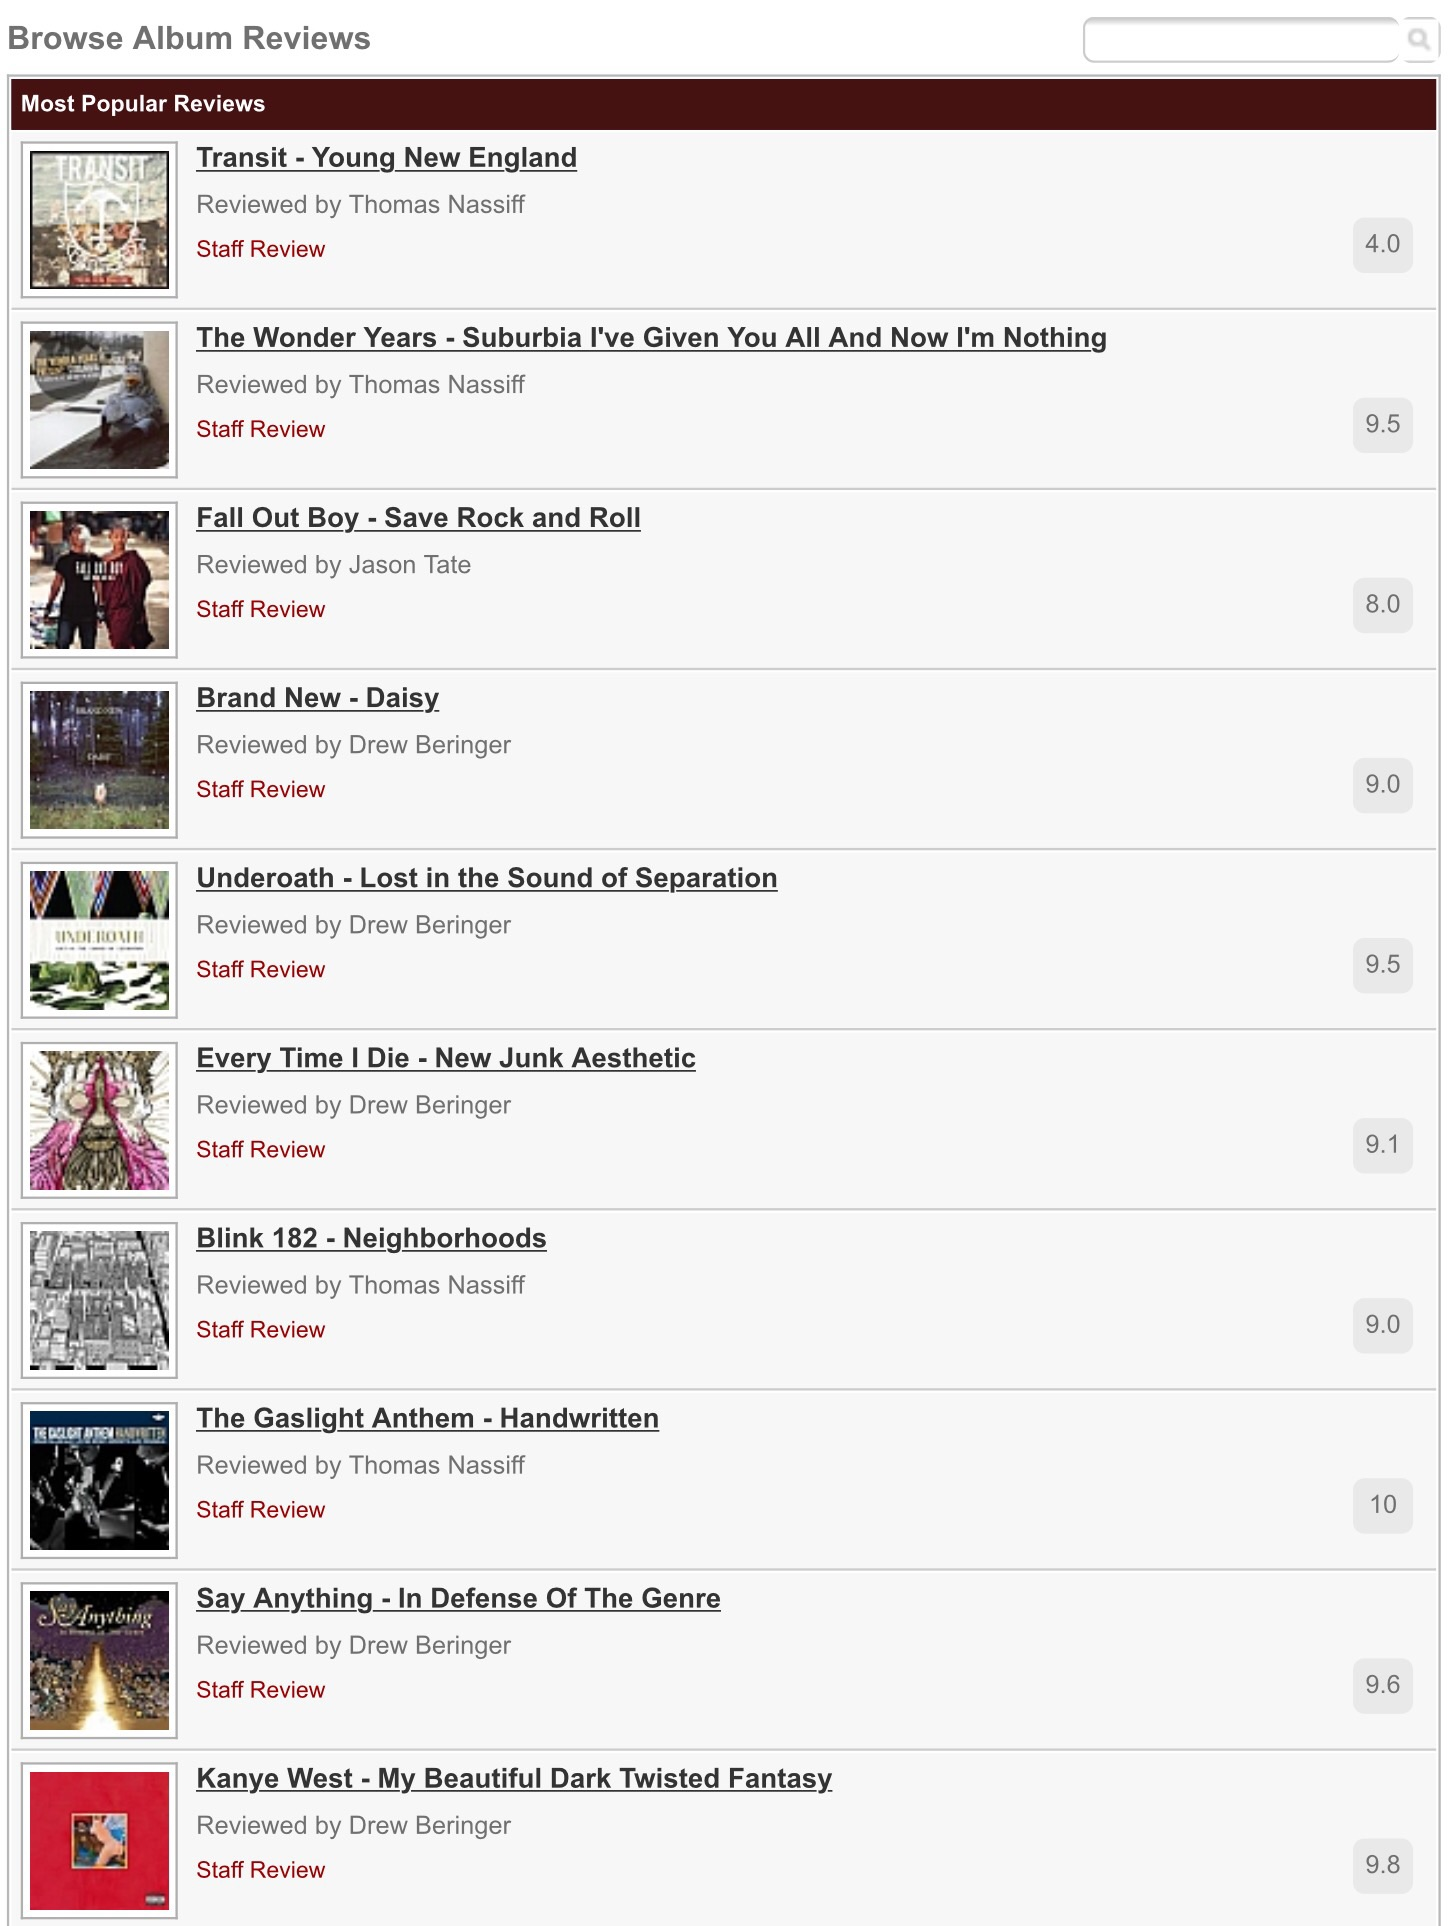 Top 10 most-viewed album reviews of all time on AP.net.